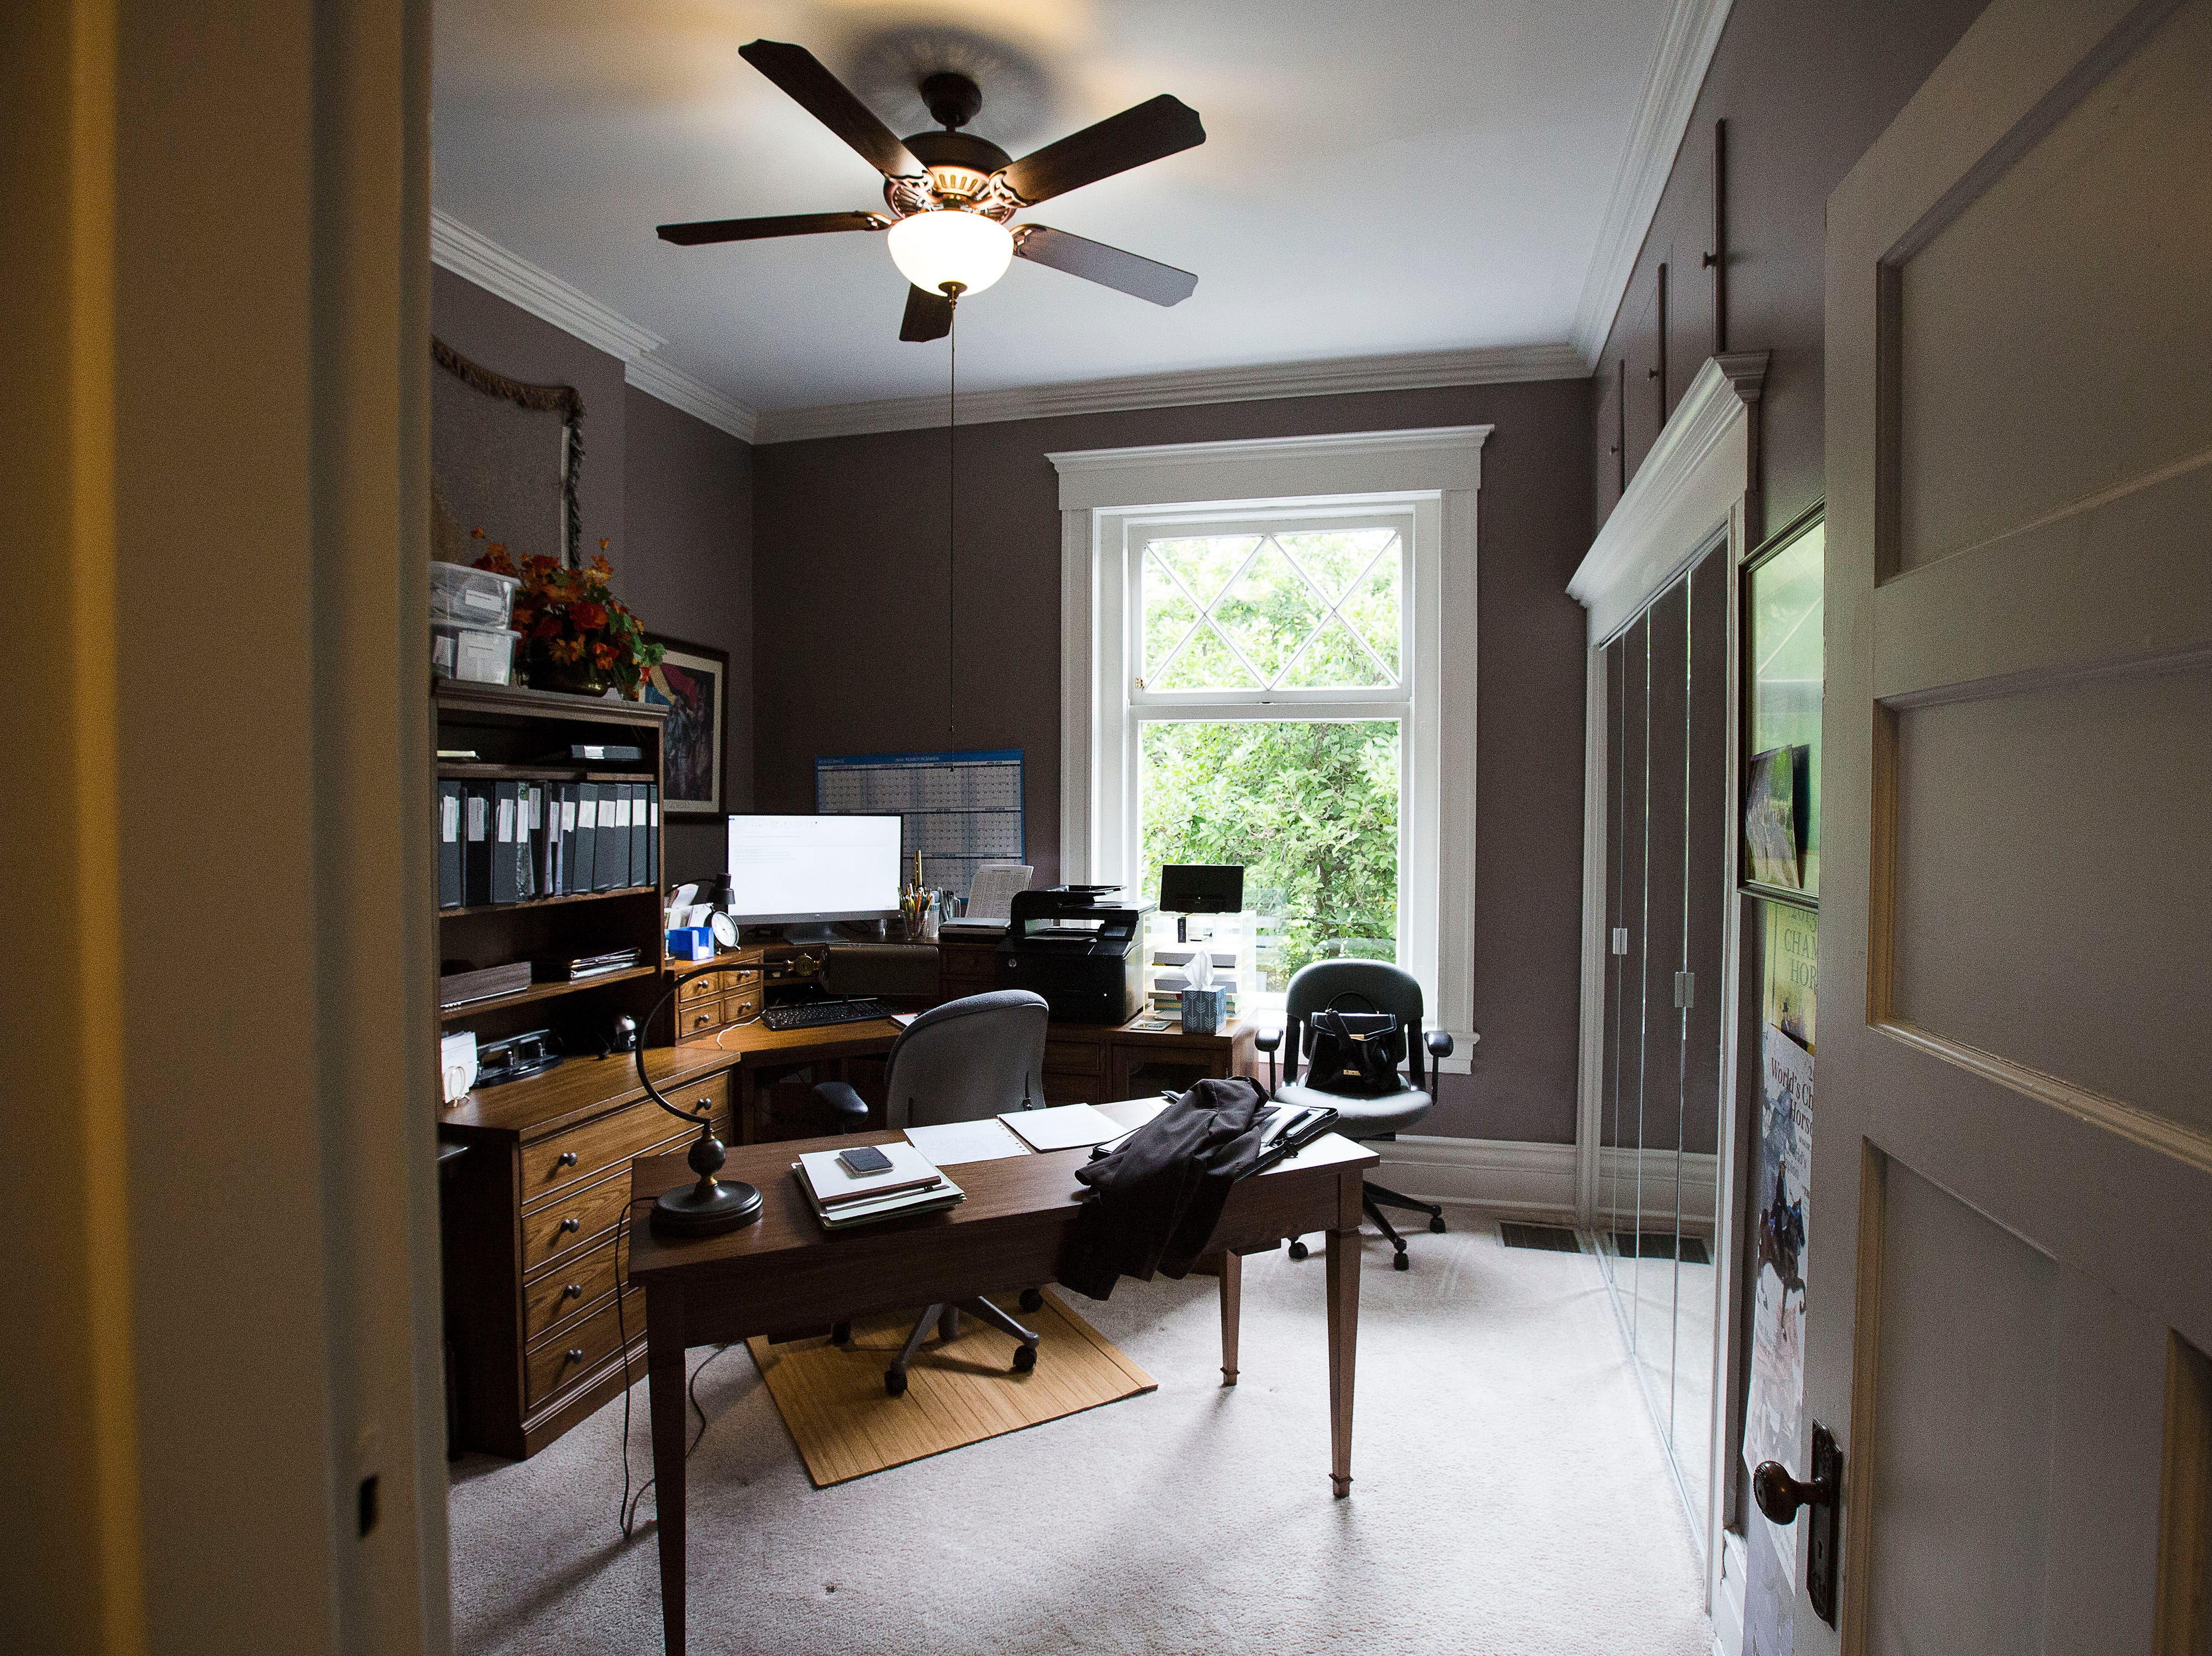 Second floor office at historic Cherokee Triangle home in Louisville, KY.